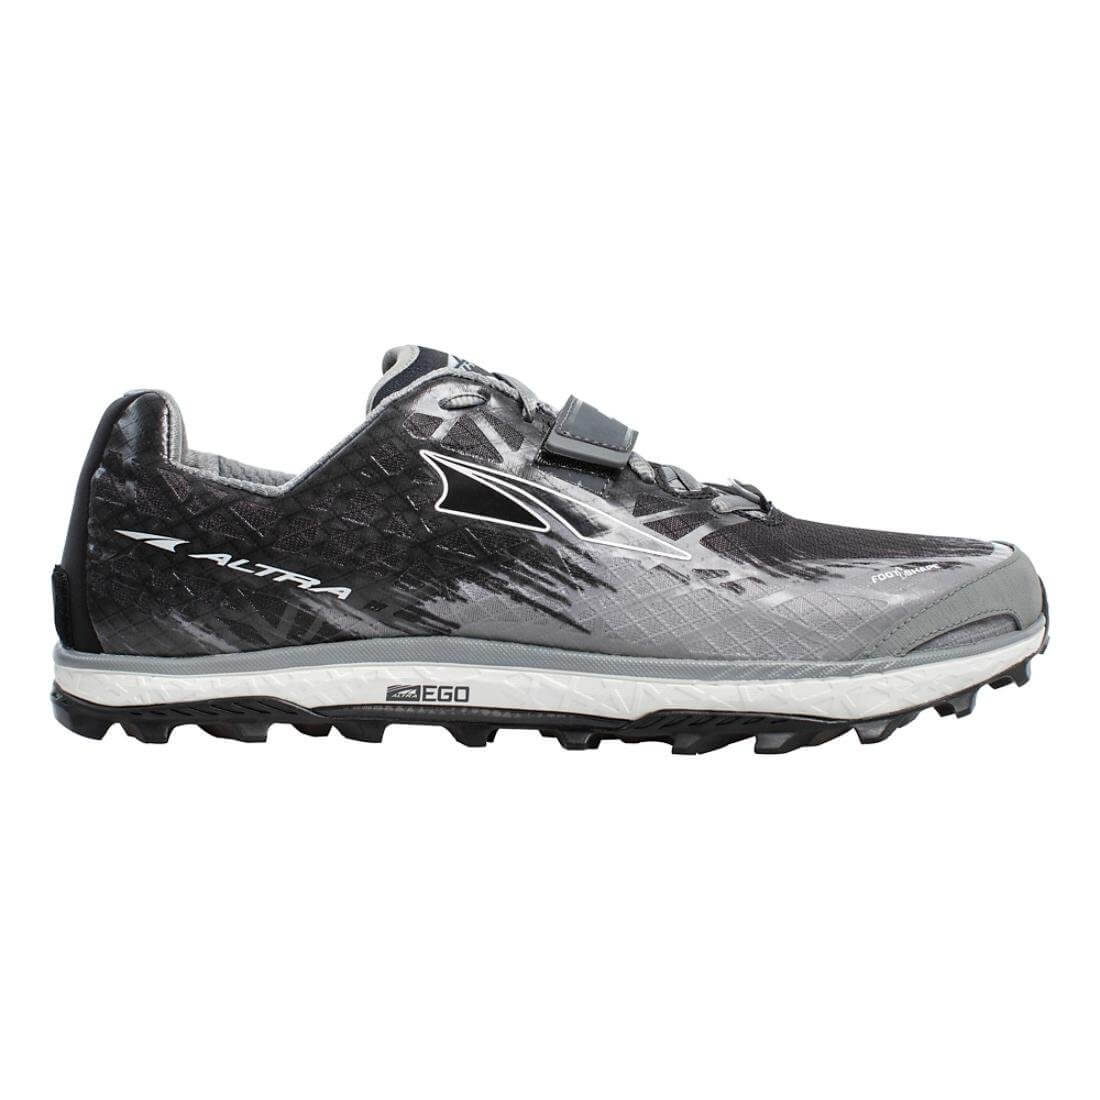 The Altra King Mt 1.5 features Altra EGO cushioning